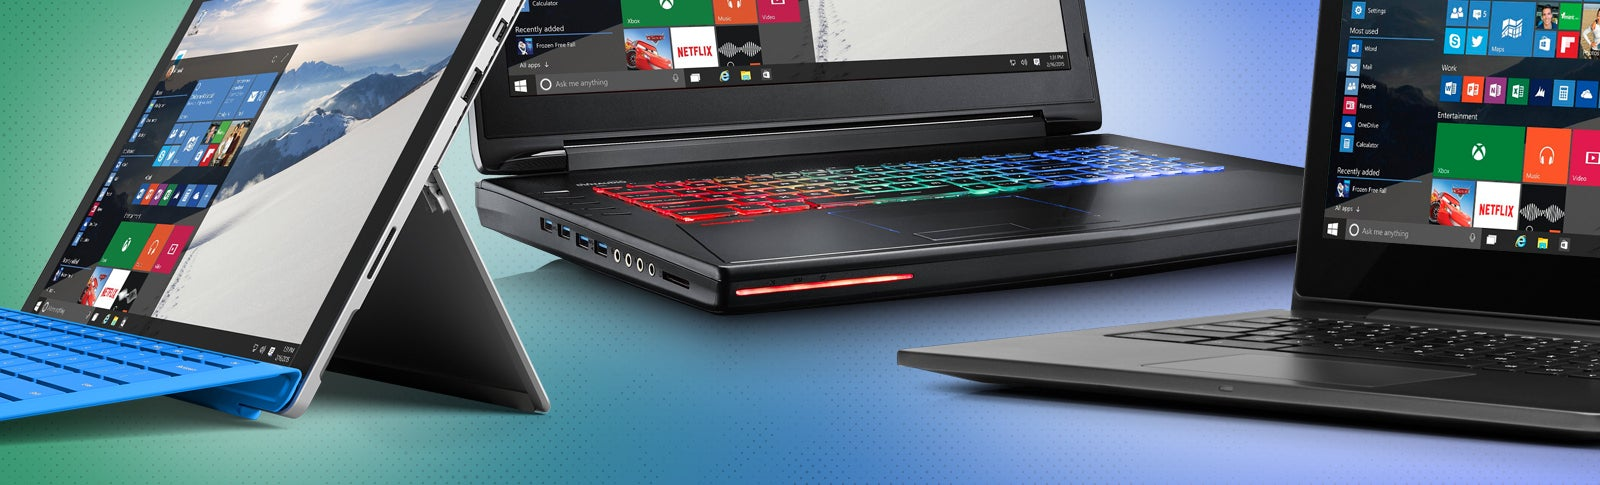 Best laptops 2019: Reviews and buying advice | PCWorld